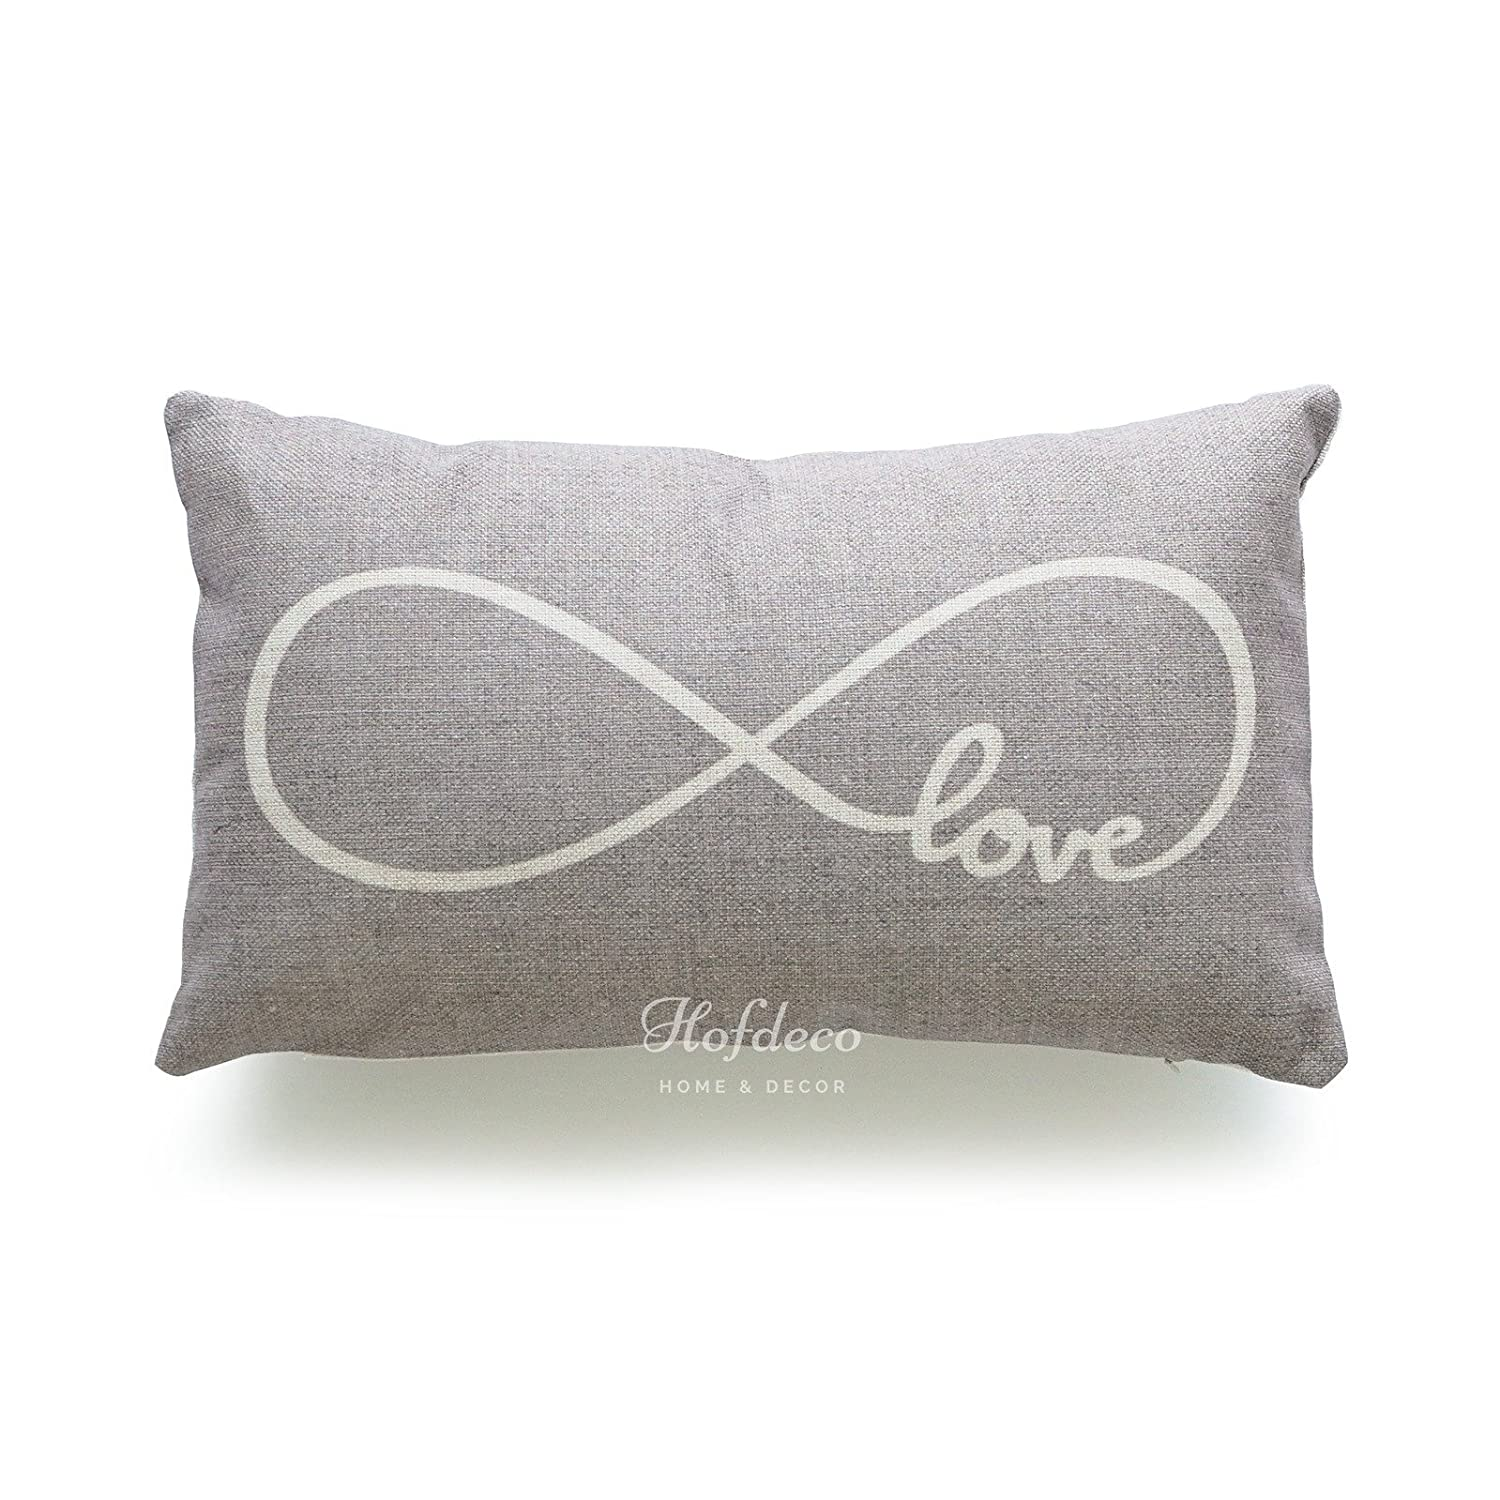 Hofdeco Set of 2Pcs Lumbar Pillow Case Grey Love Is All You Need and Infinite Love His Her Love Script HEAVY WEIGHT FABRIC Cushion Cover 12x20